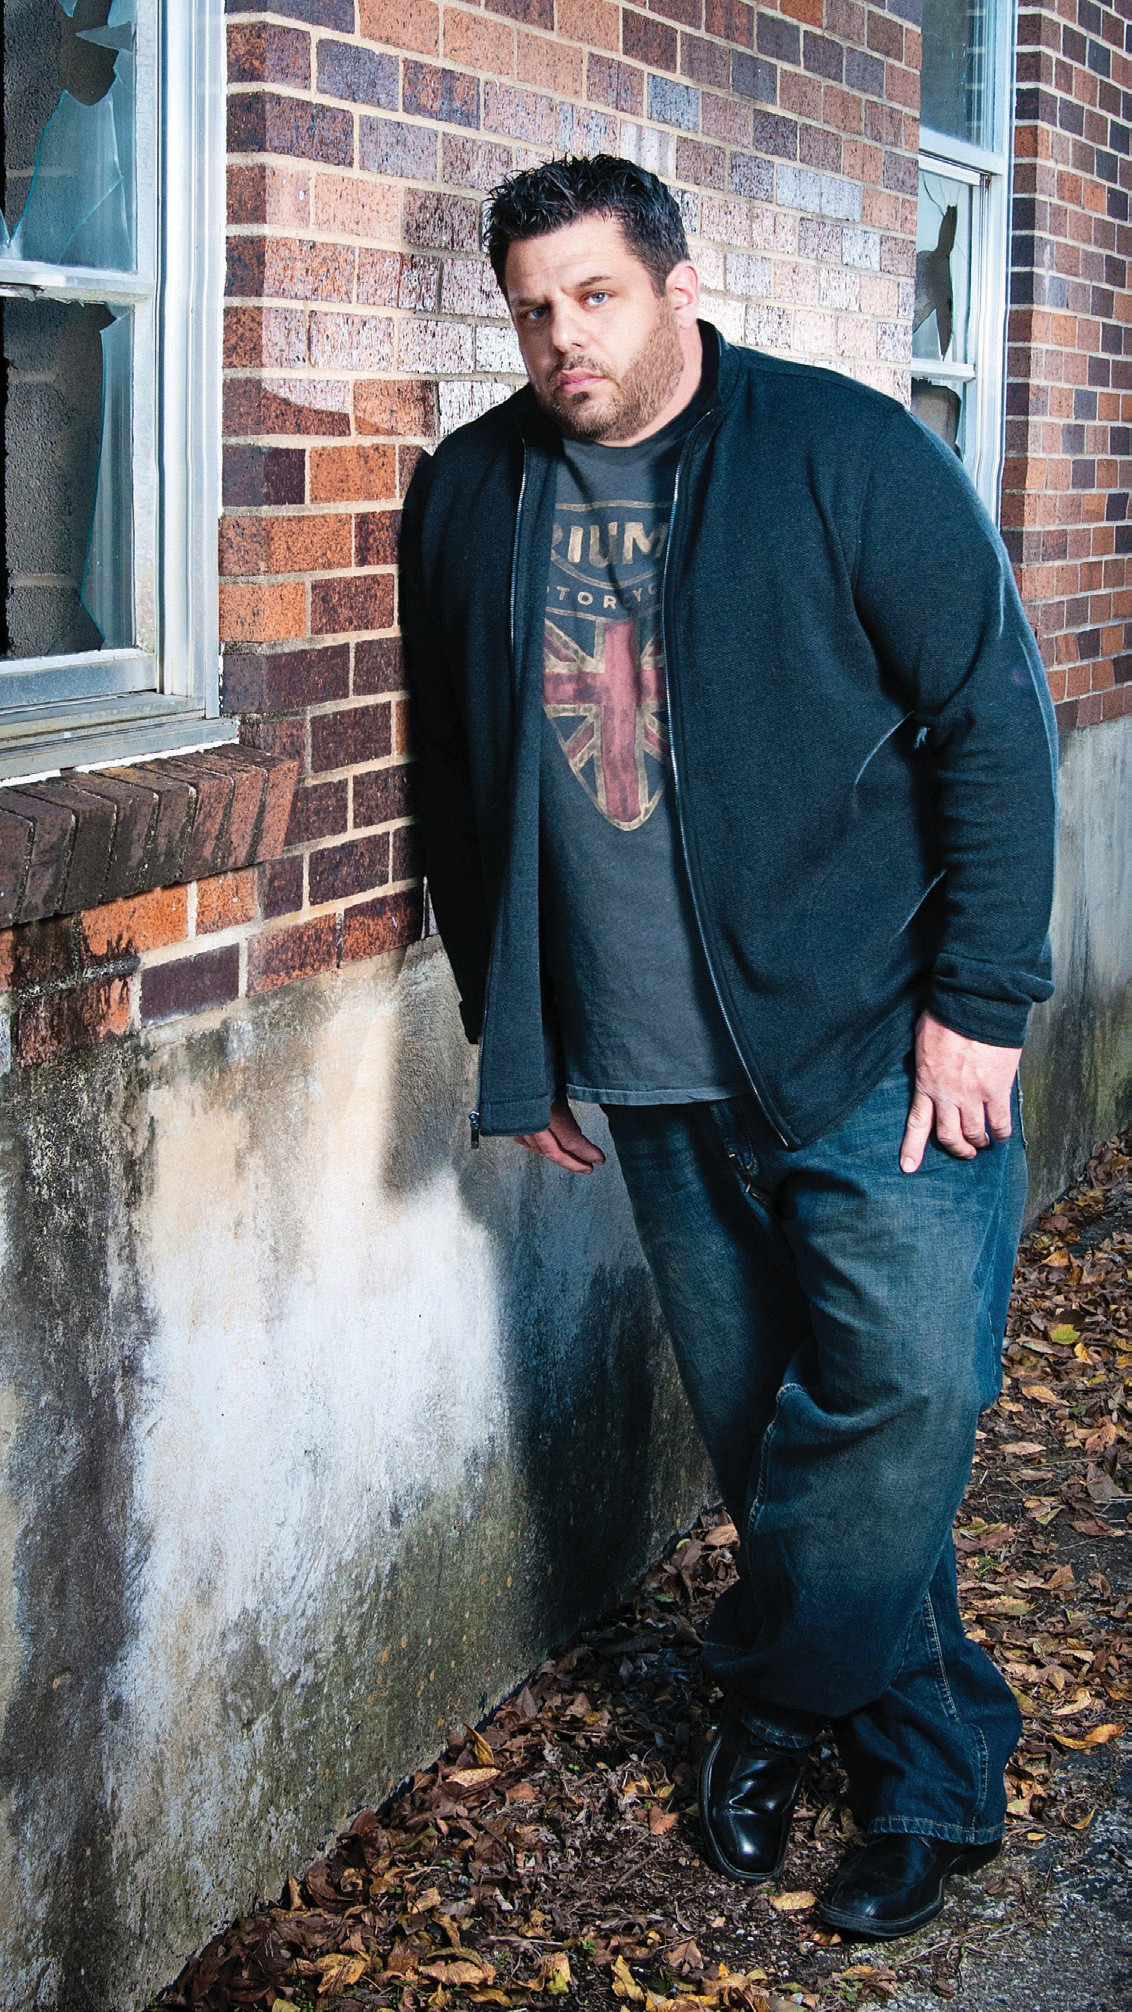 Brad Klinge, founder of Everyday Paranormal and star of Ghost Lab, will speak at the Pleasanton Civic Center on January 17. This free event is sponsored by the Friends of the Pleasanton Public Library.